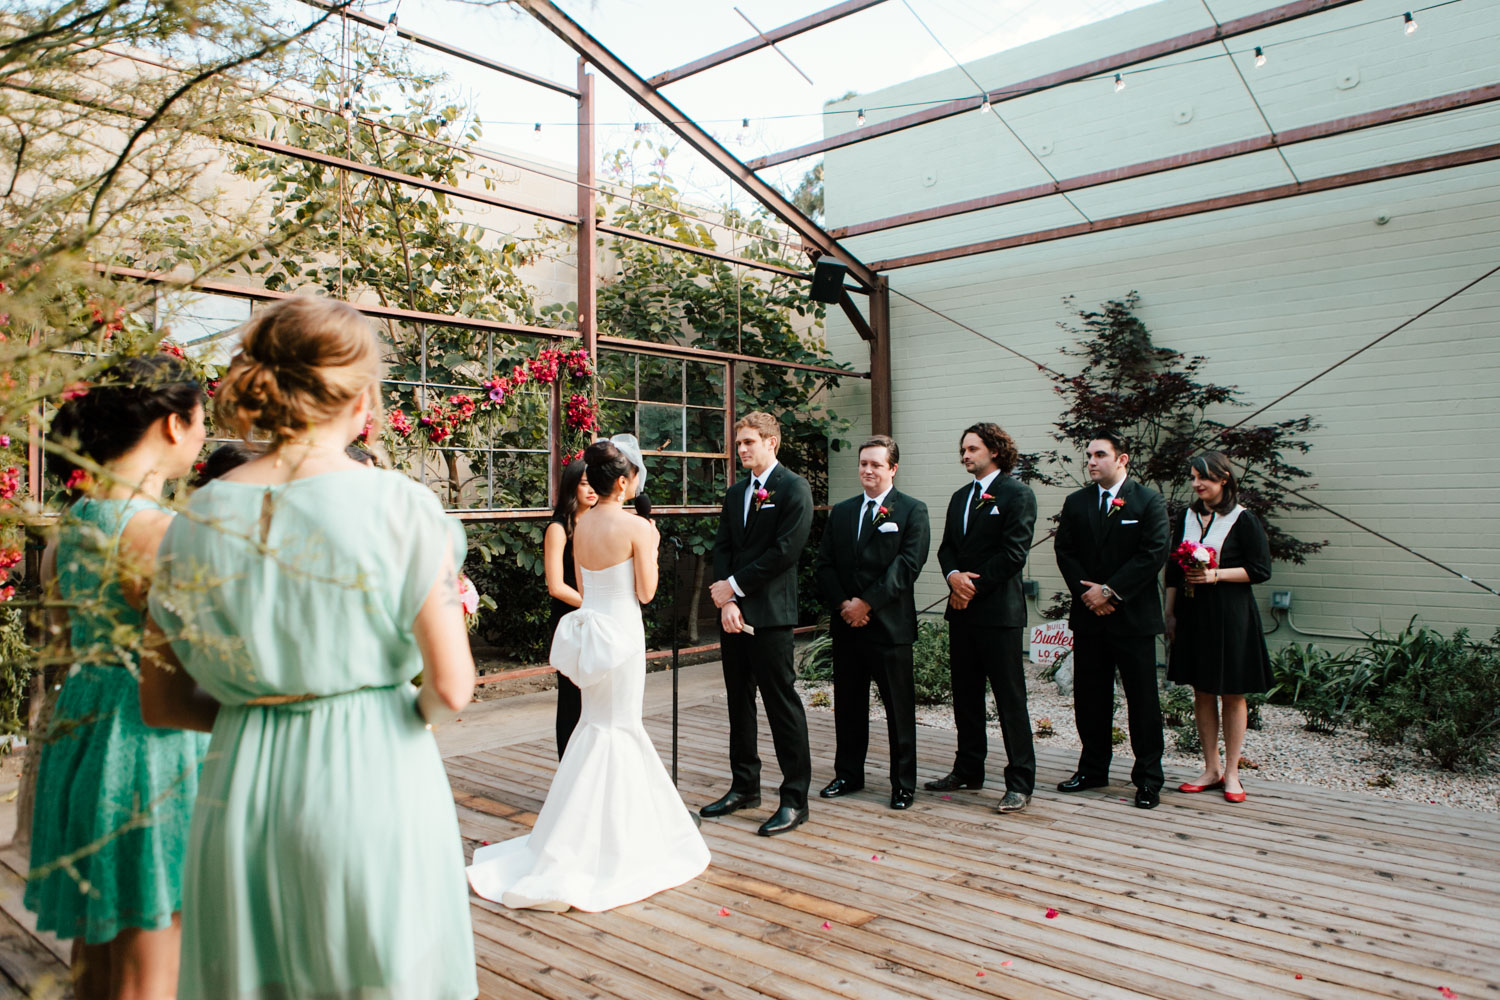 Los Angeles Wedding Photographer, The Elysian  - The Gathering Season x weareleoandkat 052.JPG